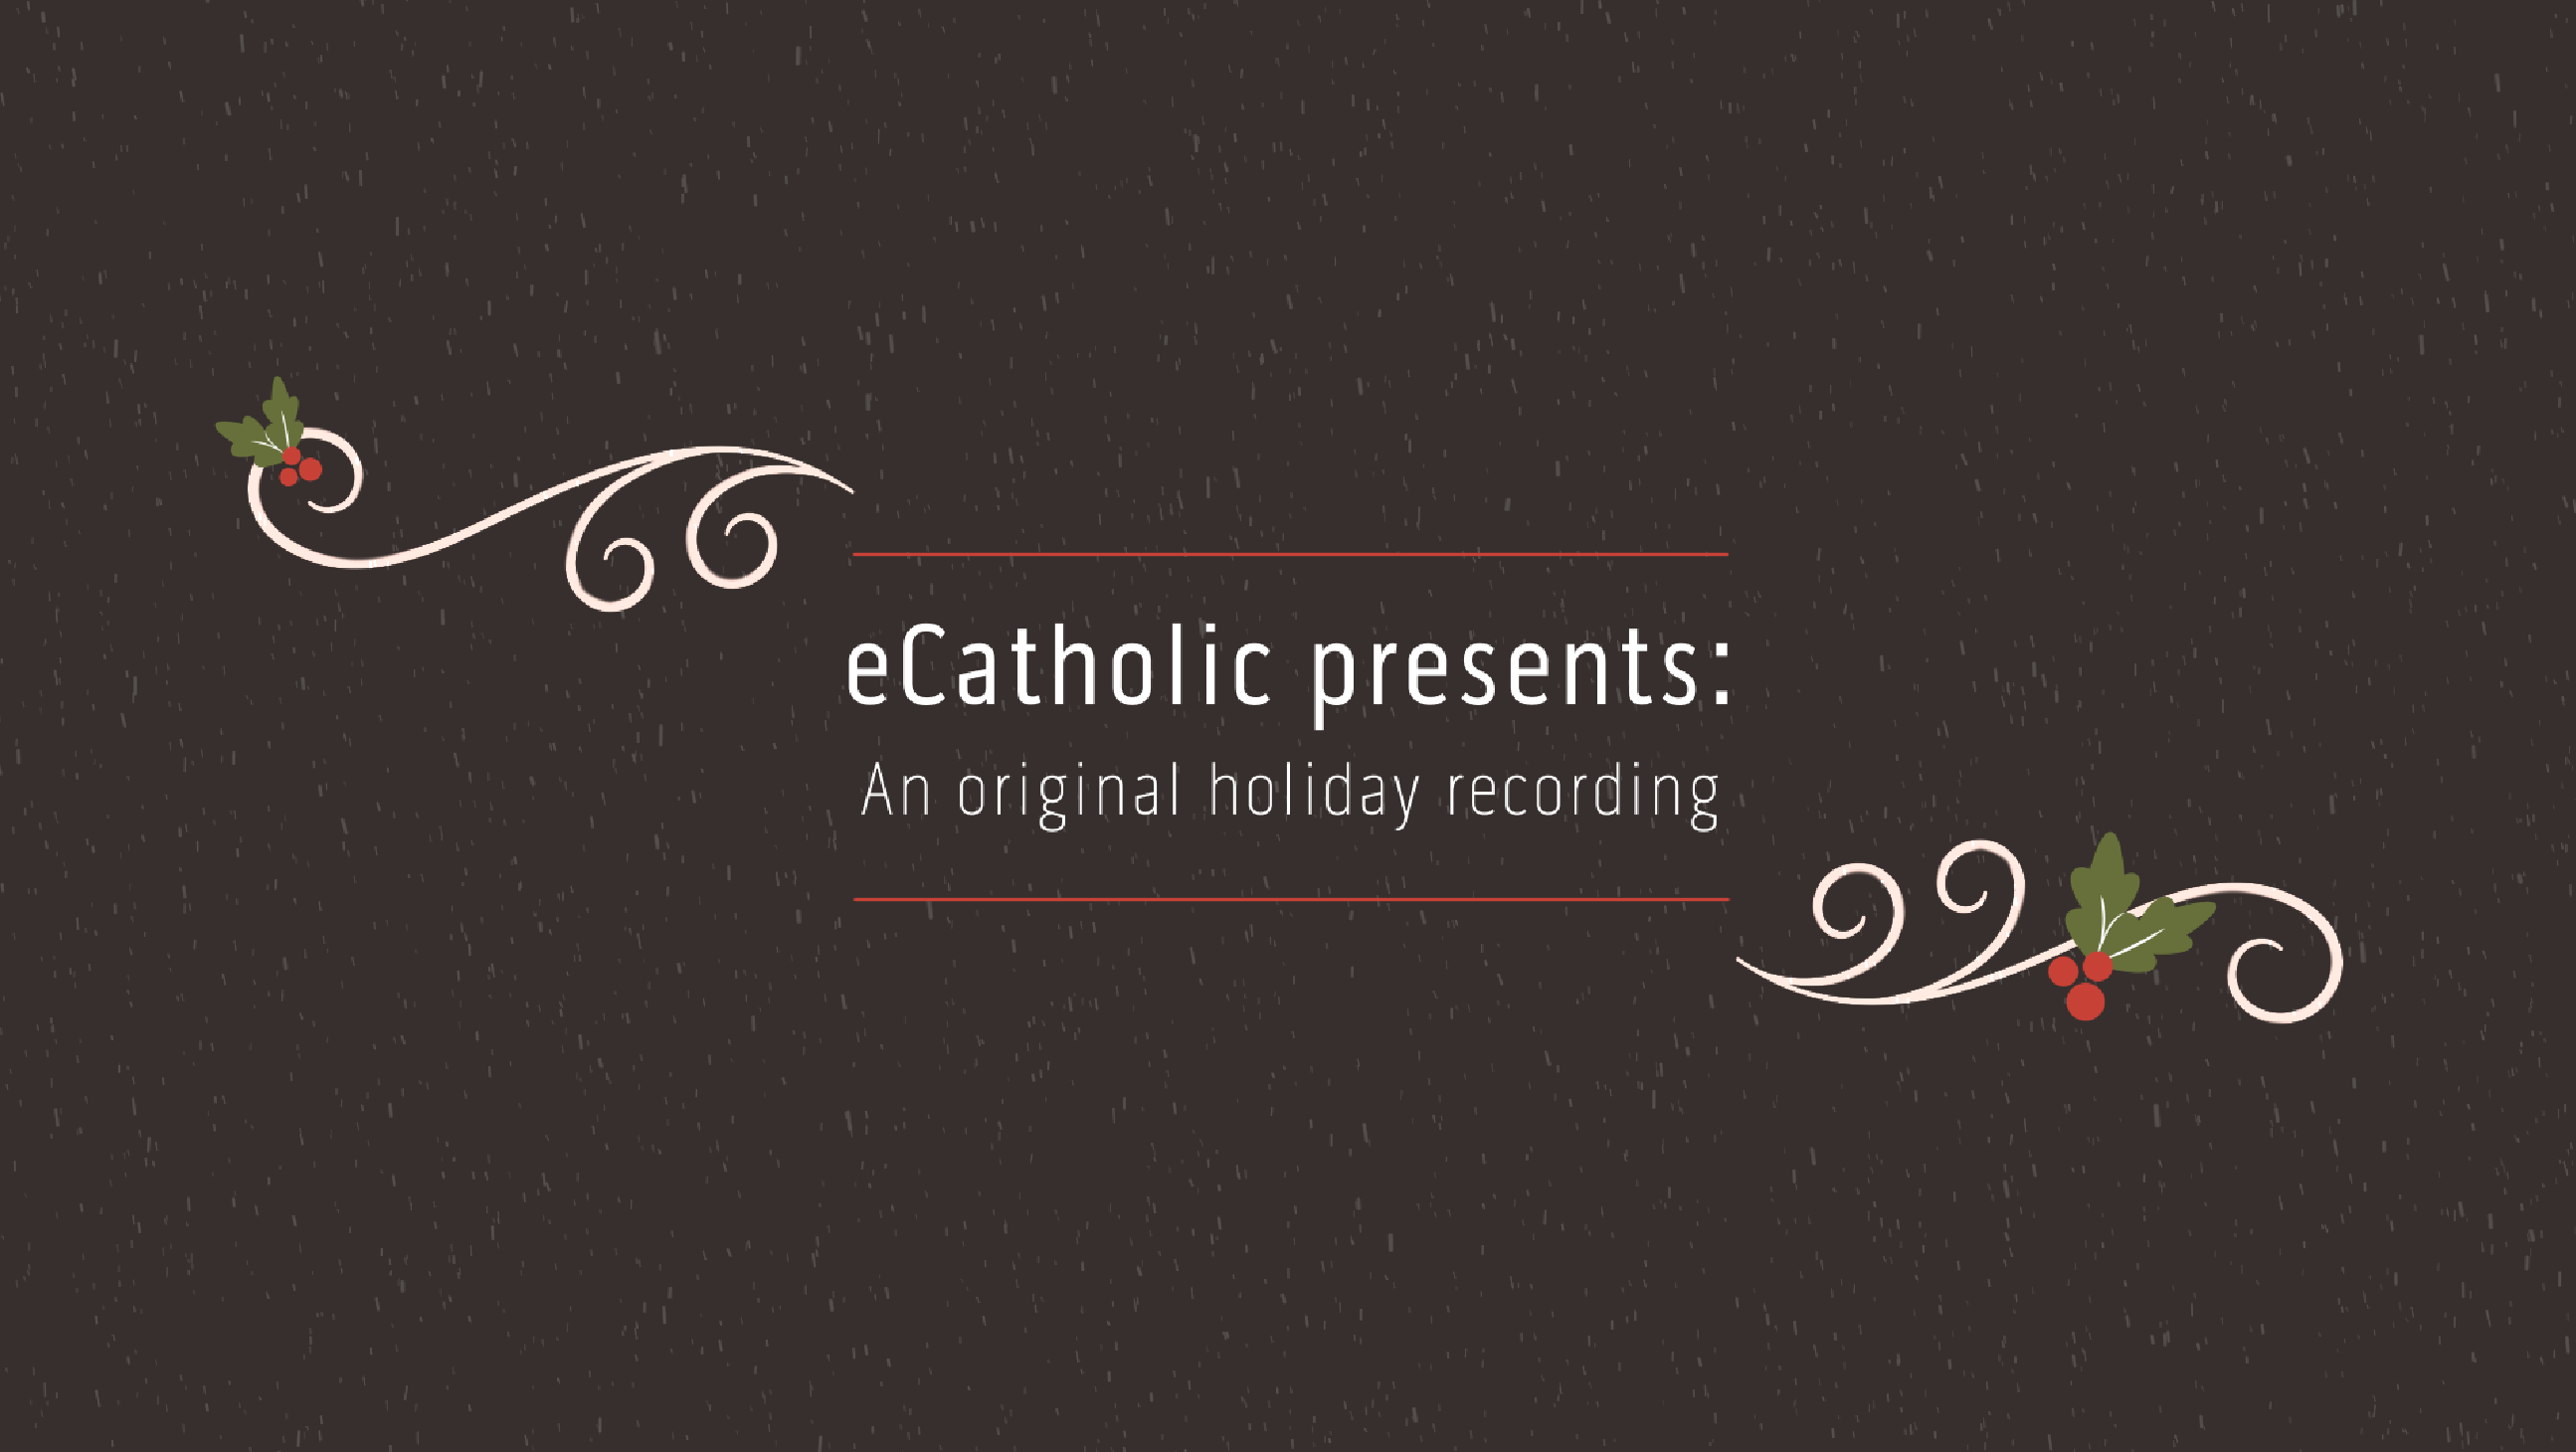 eCatholic presents: An original holiday recording